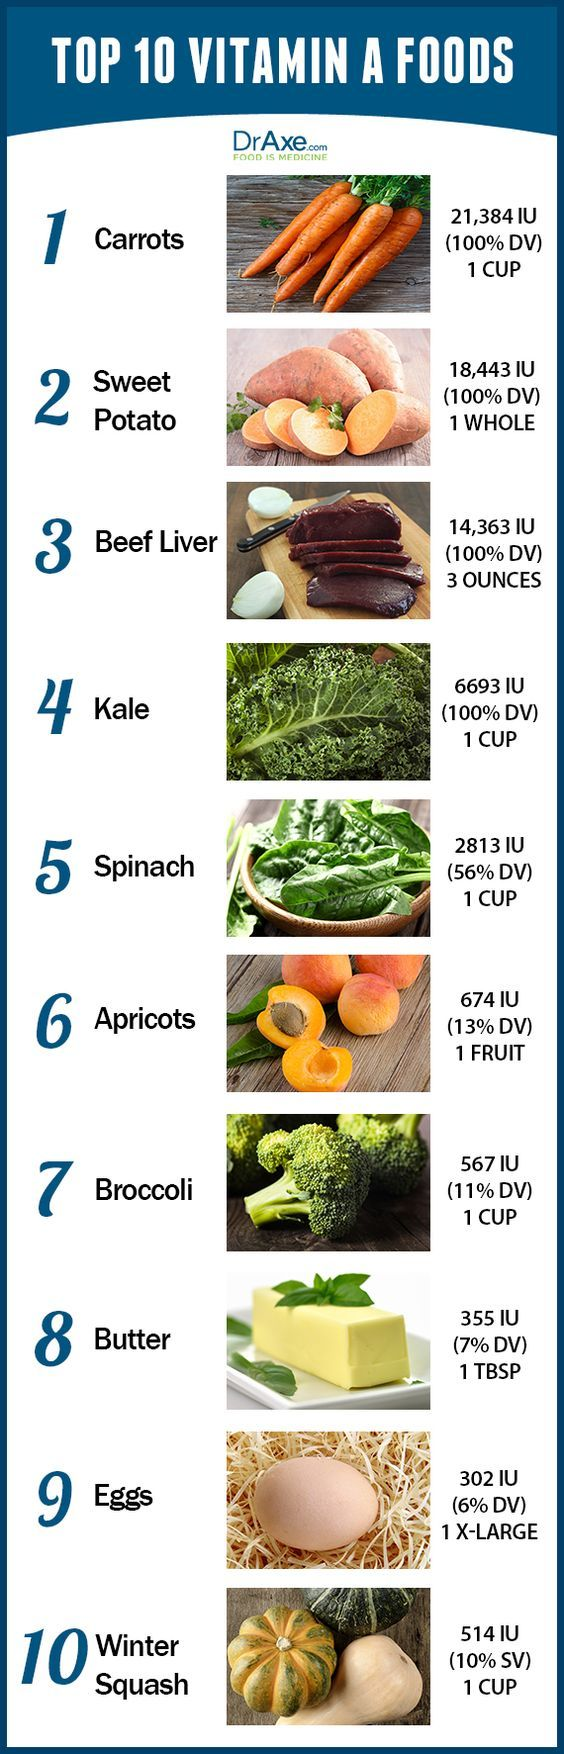 Top 10 Vitamin A Foods to eat!- The surprising health benefits of Vitamin vitamin d5 vitamin e vitamin d3 Excess calcium in the blood. Nausea and vomiting. This is considered approximately 50k IU of vitamin D a day, recommended doses for adults is 600 IU/day.